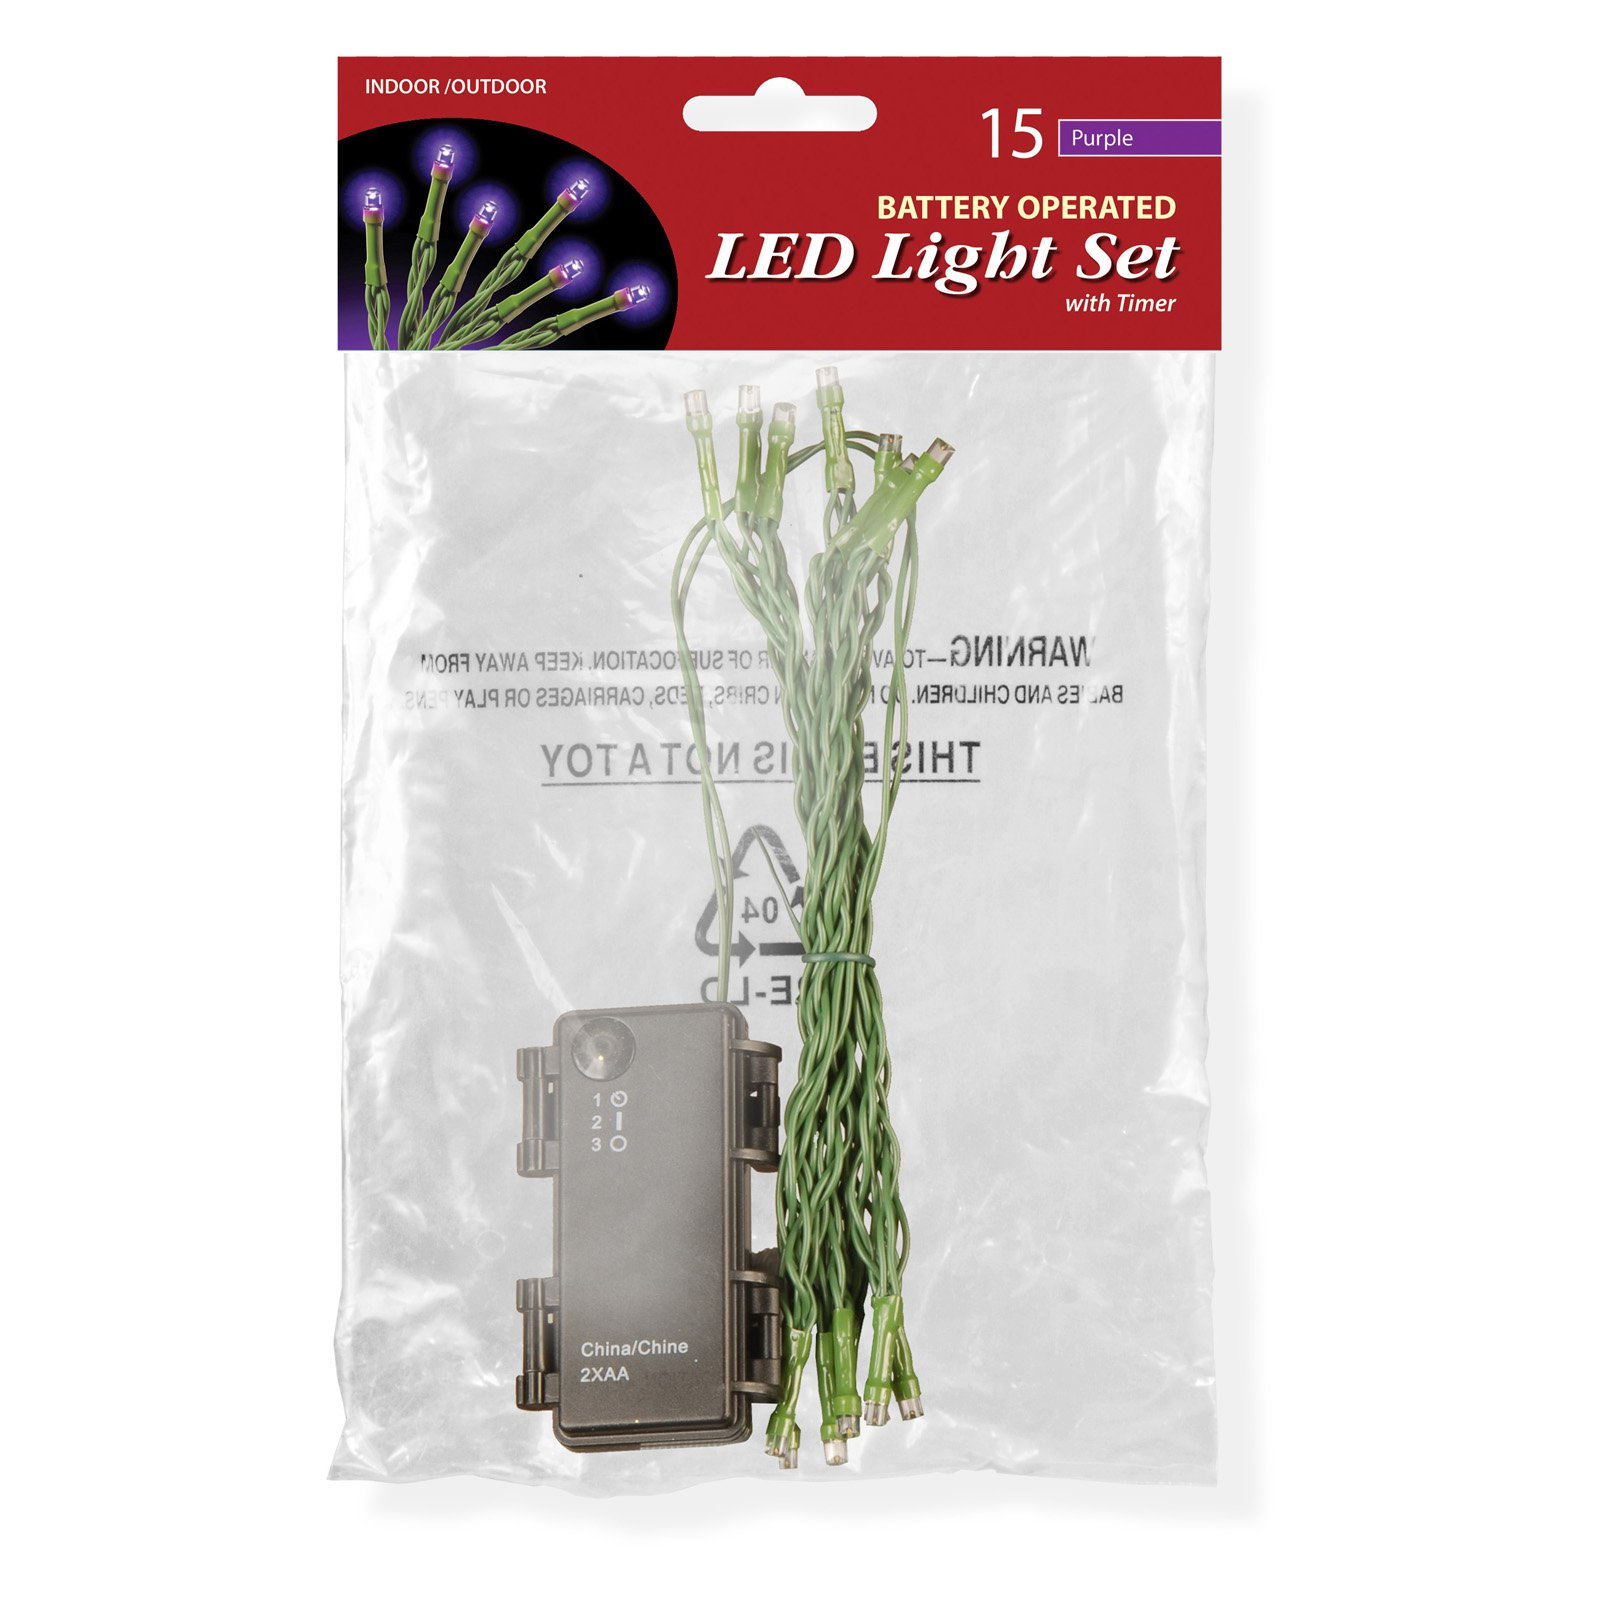 Battery Operated LED Light String Set, 15 Bulb, Purple